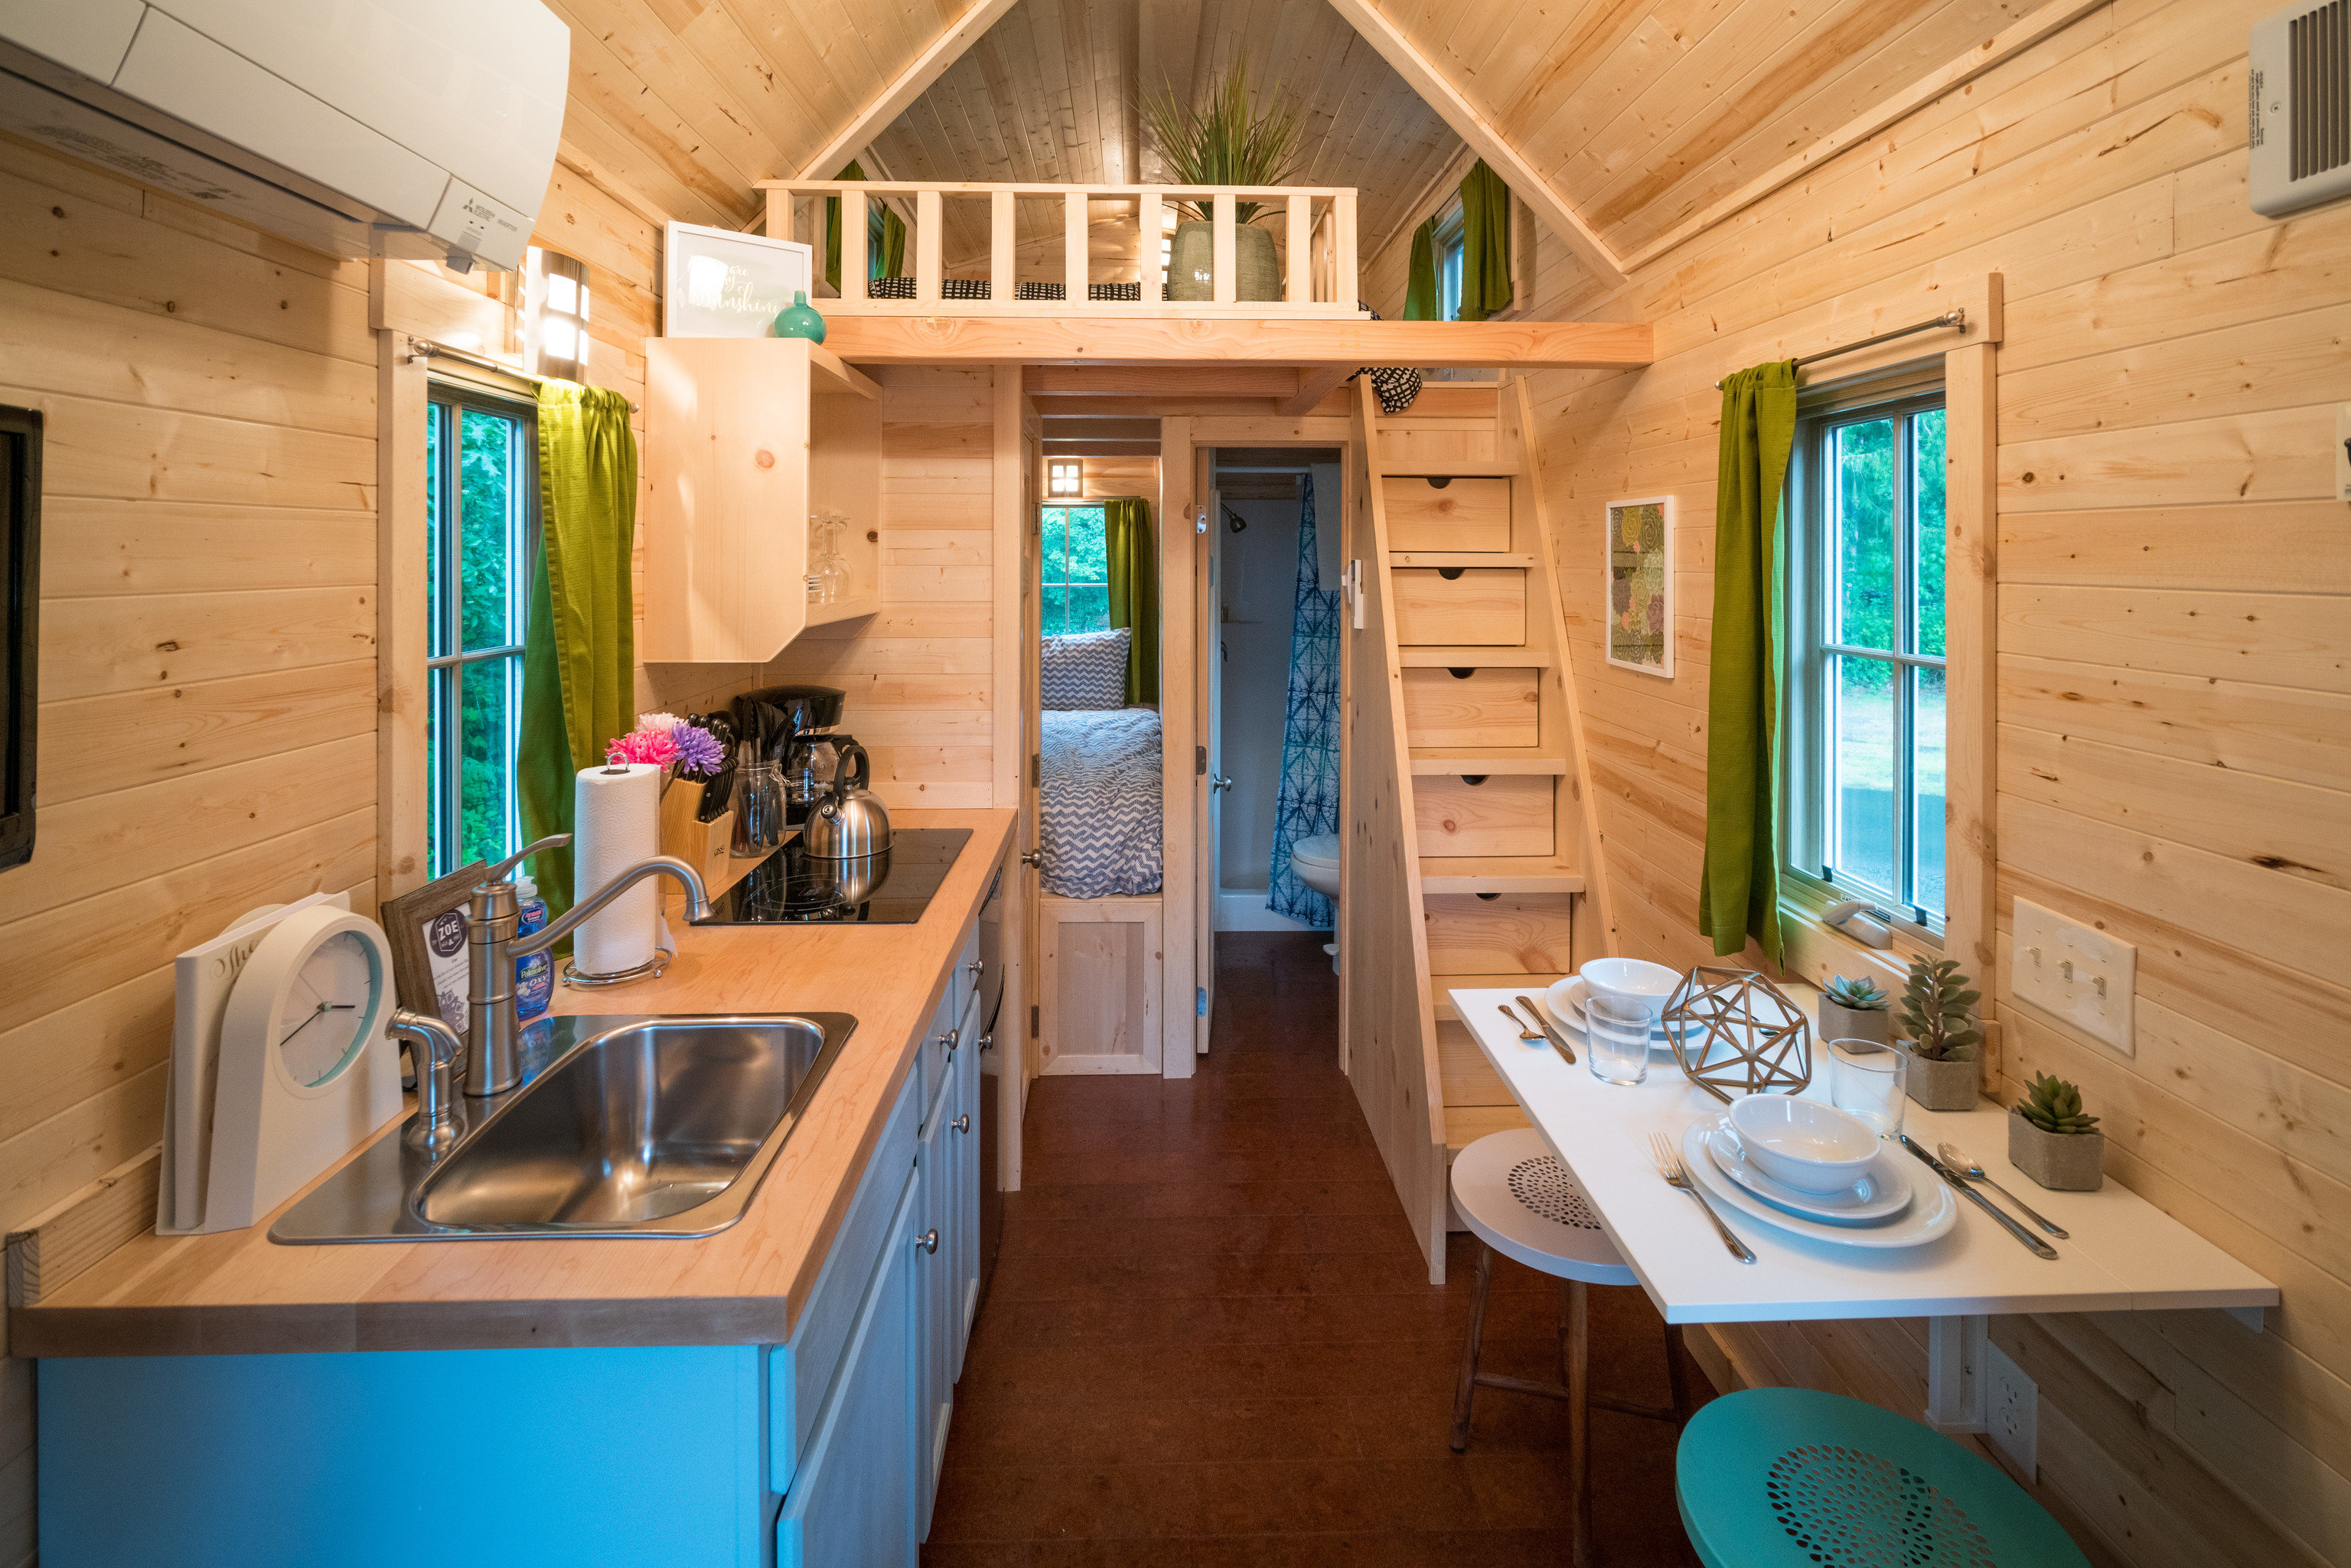 Glamping Outdoors + Adventure Trip Ideas floor indoor room property house home estate cottage Kitchen interior design real estate log cabin Villa apartment farmhouse